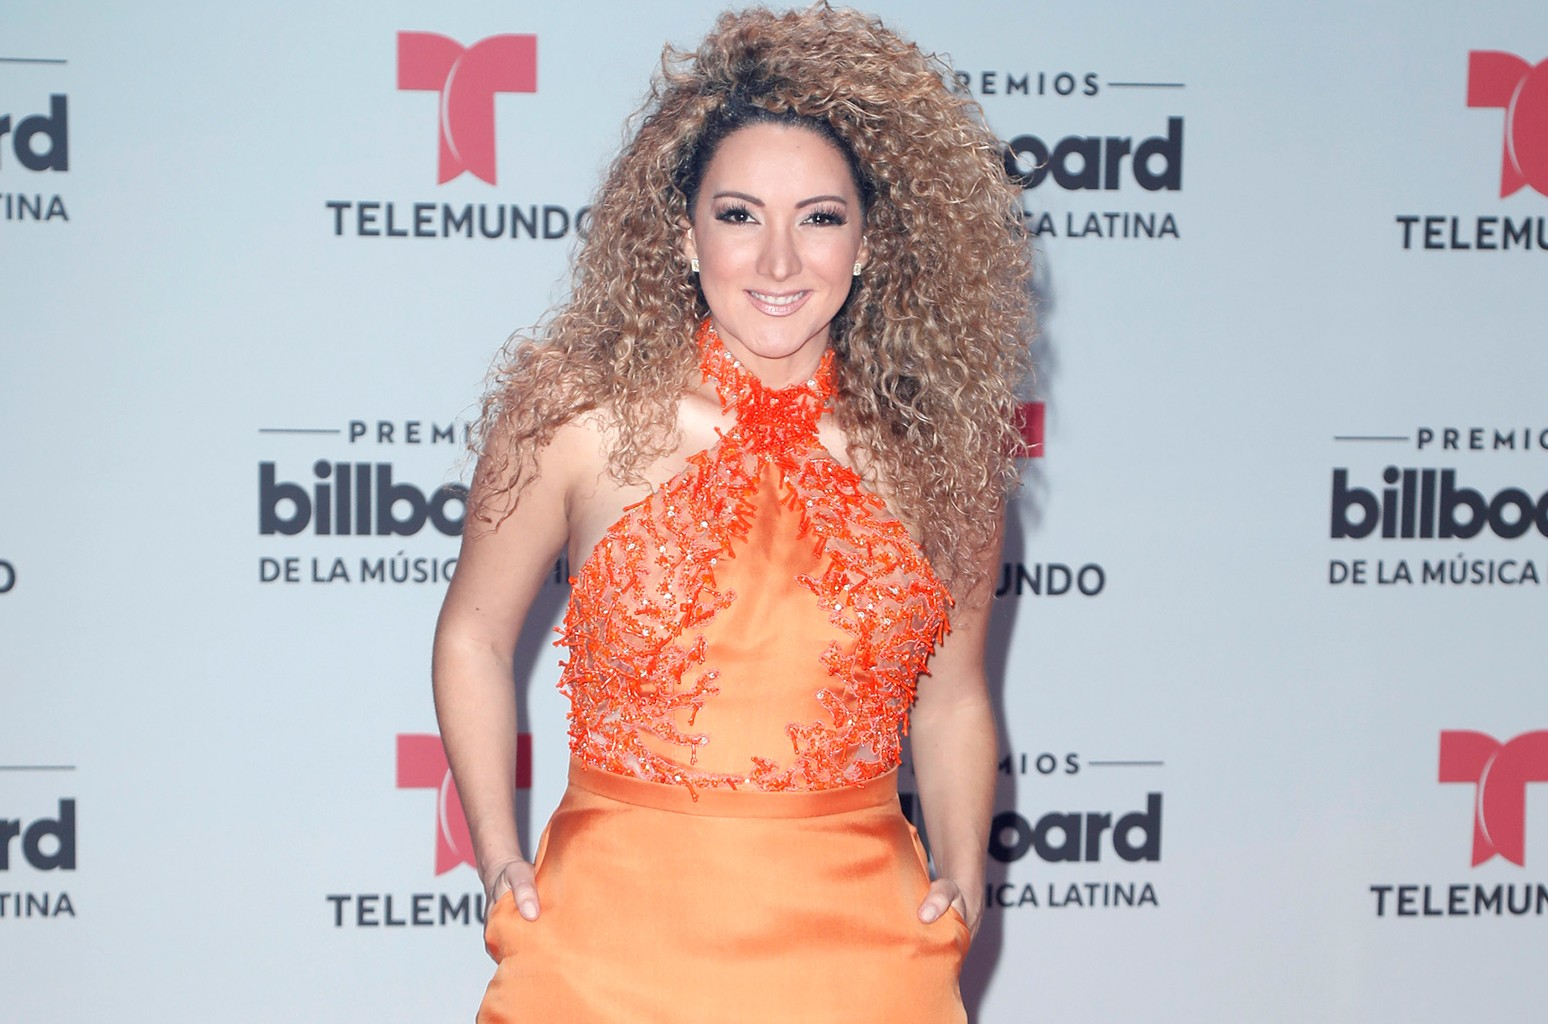 Erika Ender attends the Billboard Latin Music Awards at Watsco Center on April 27, 2017 in Coral Gables, Fla.